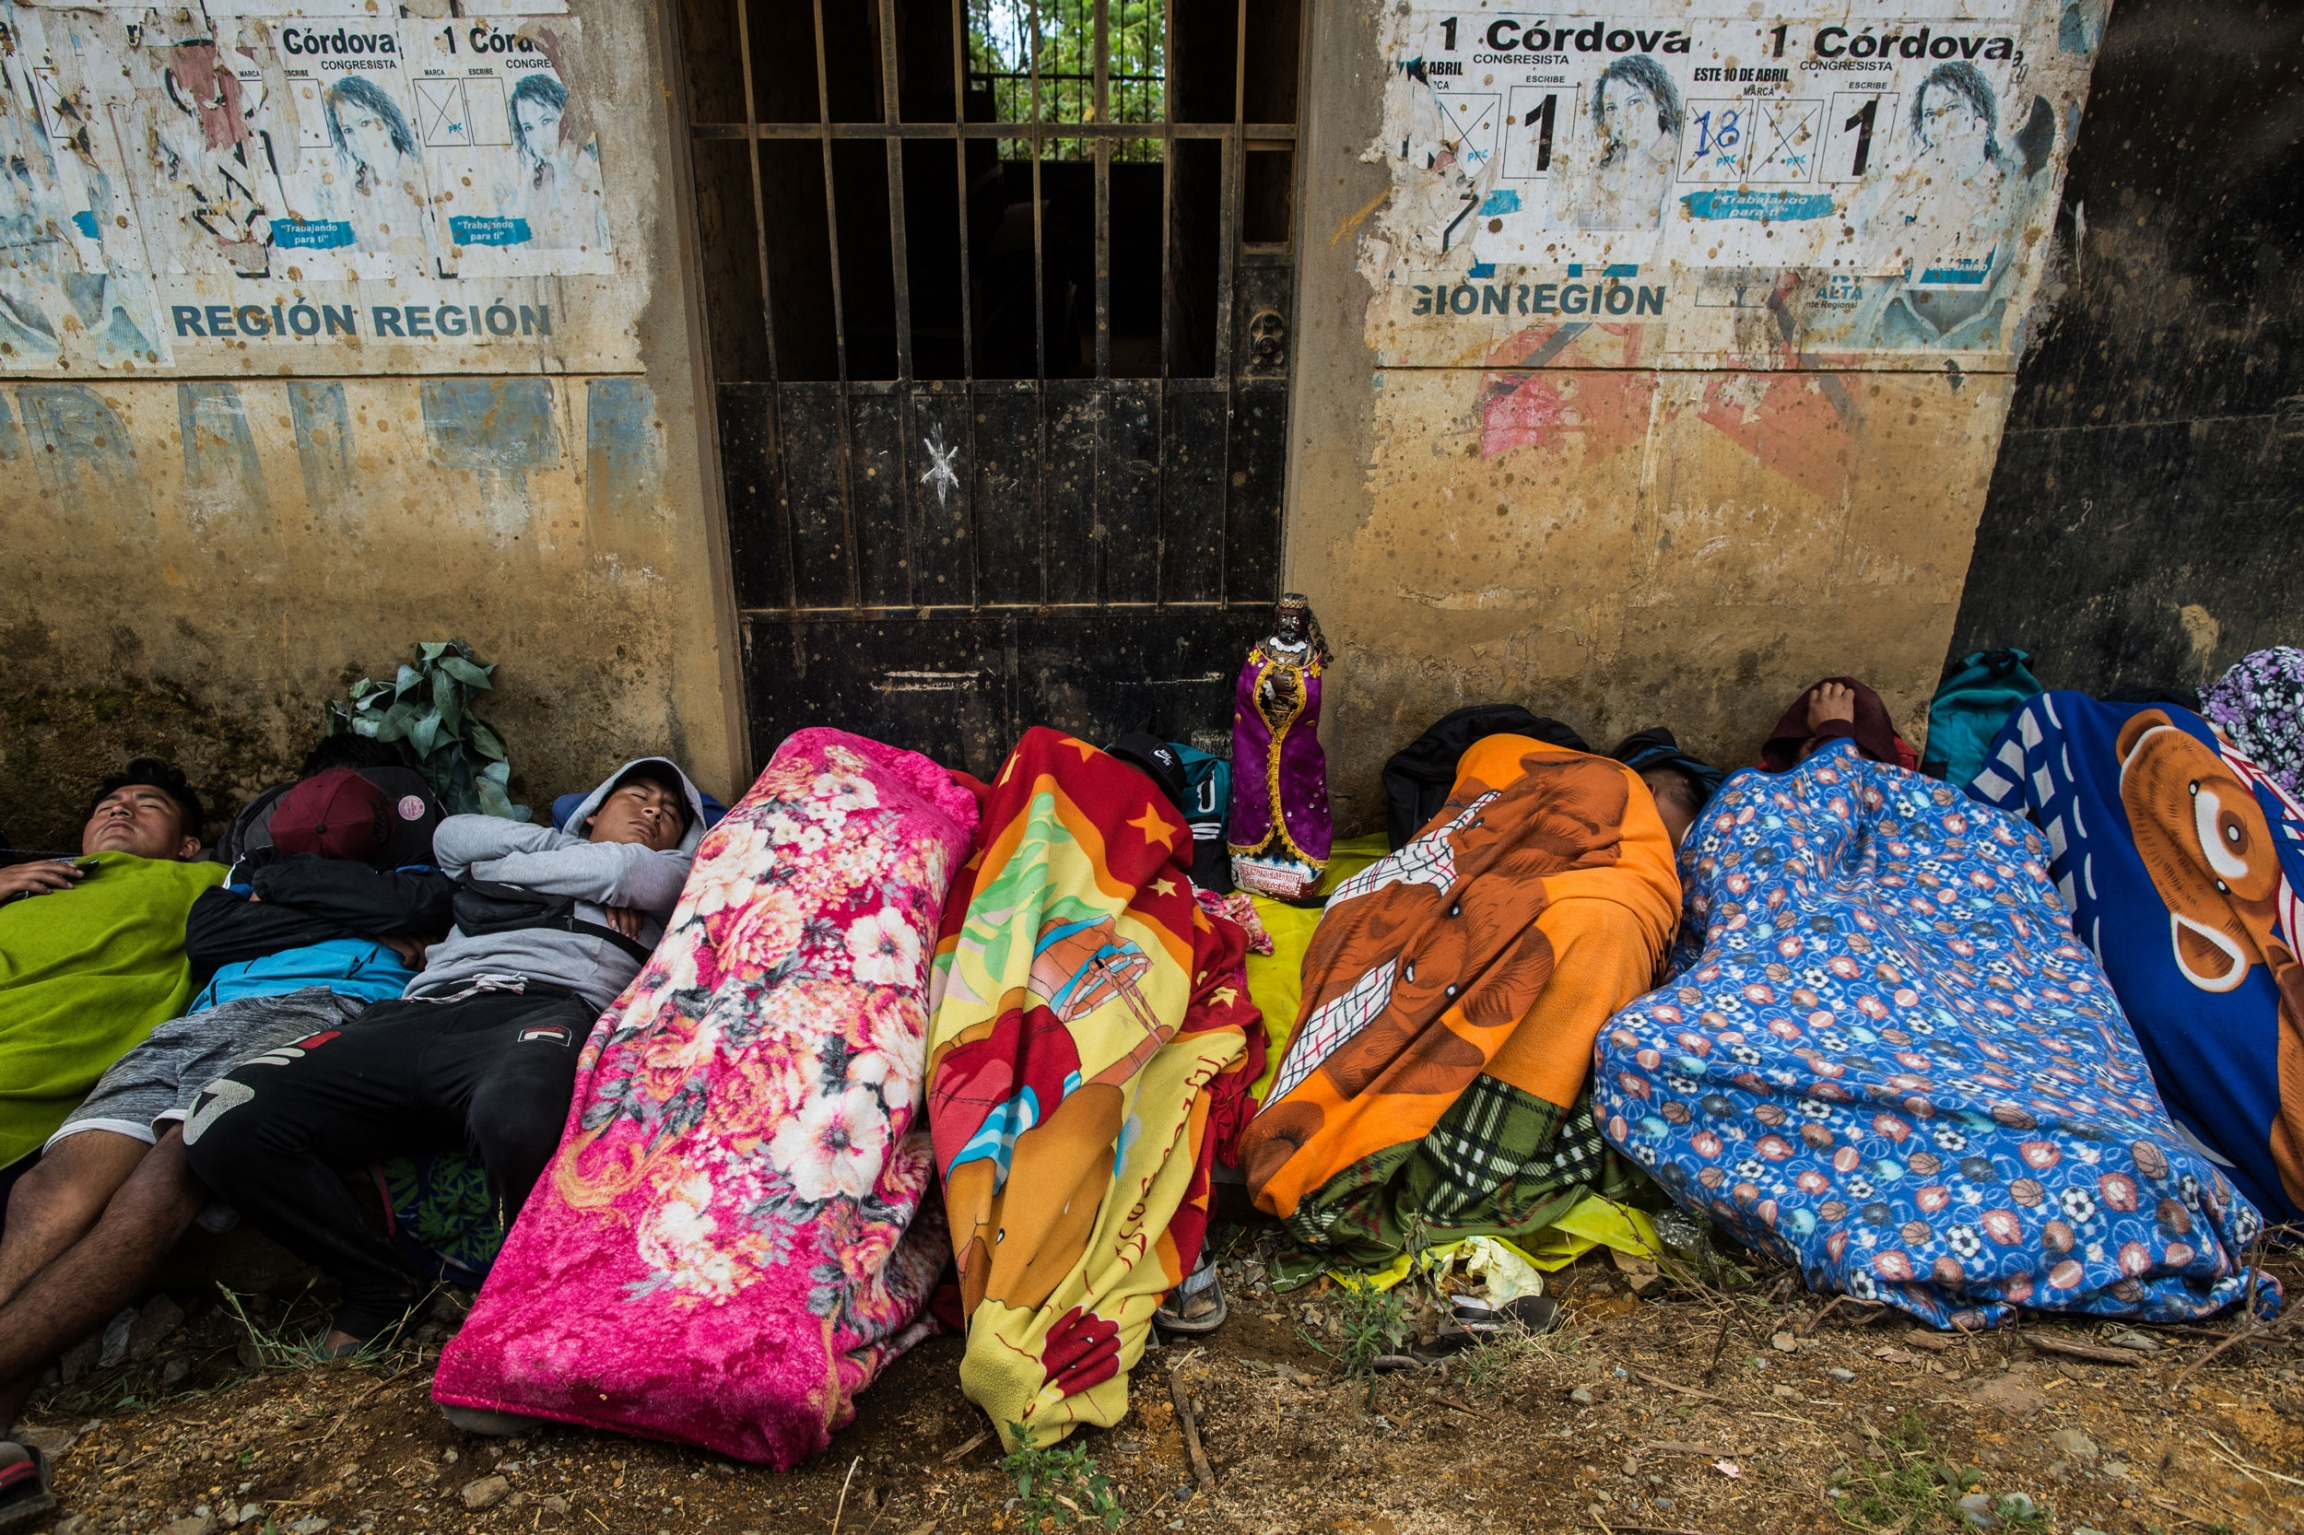 Pilgrims are shown wrapped in colorful blankets laying on the ground on the side of the road.